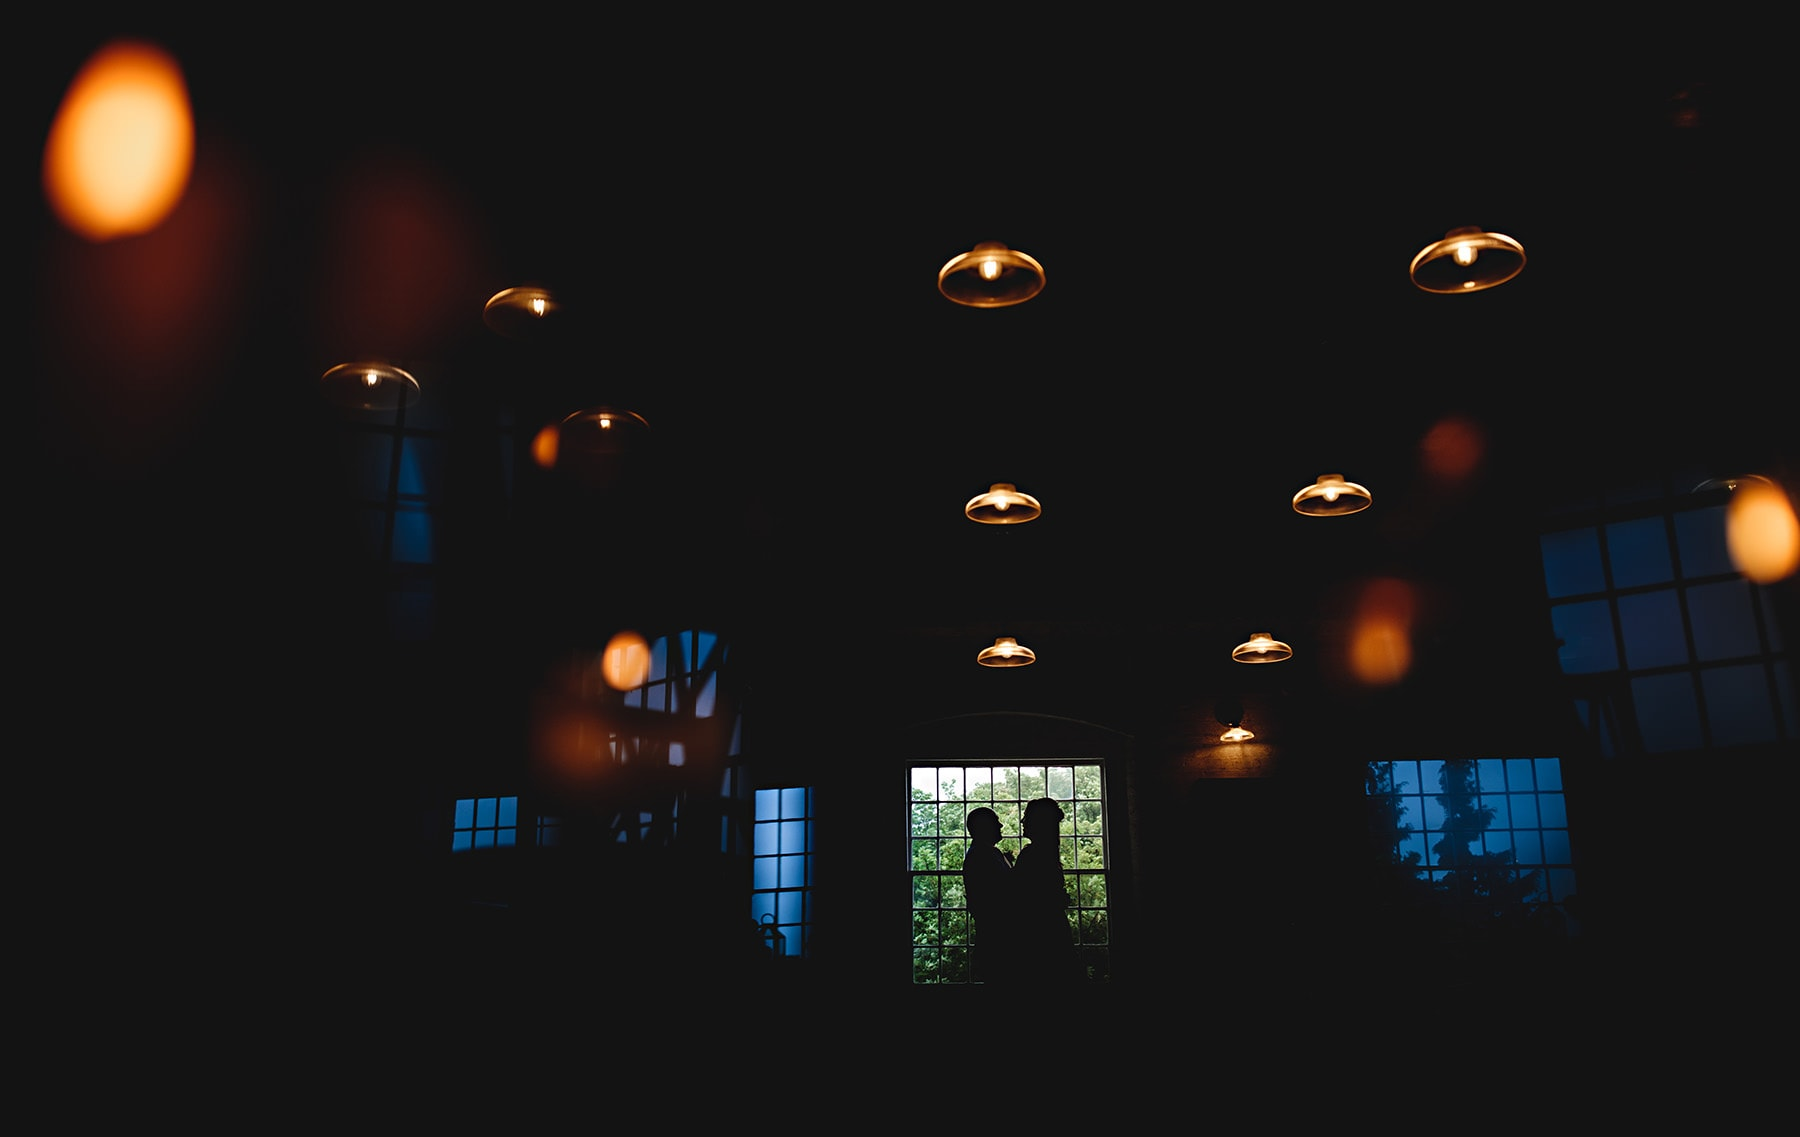 The bride and groom in shilouette against orange and blue lights at The West Mill in Derbyshire